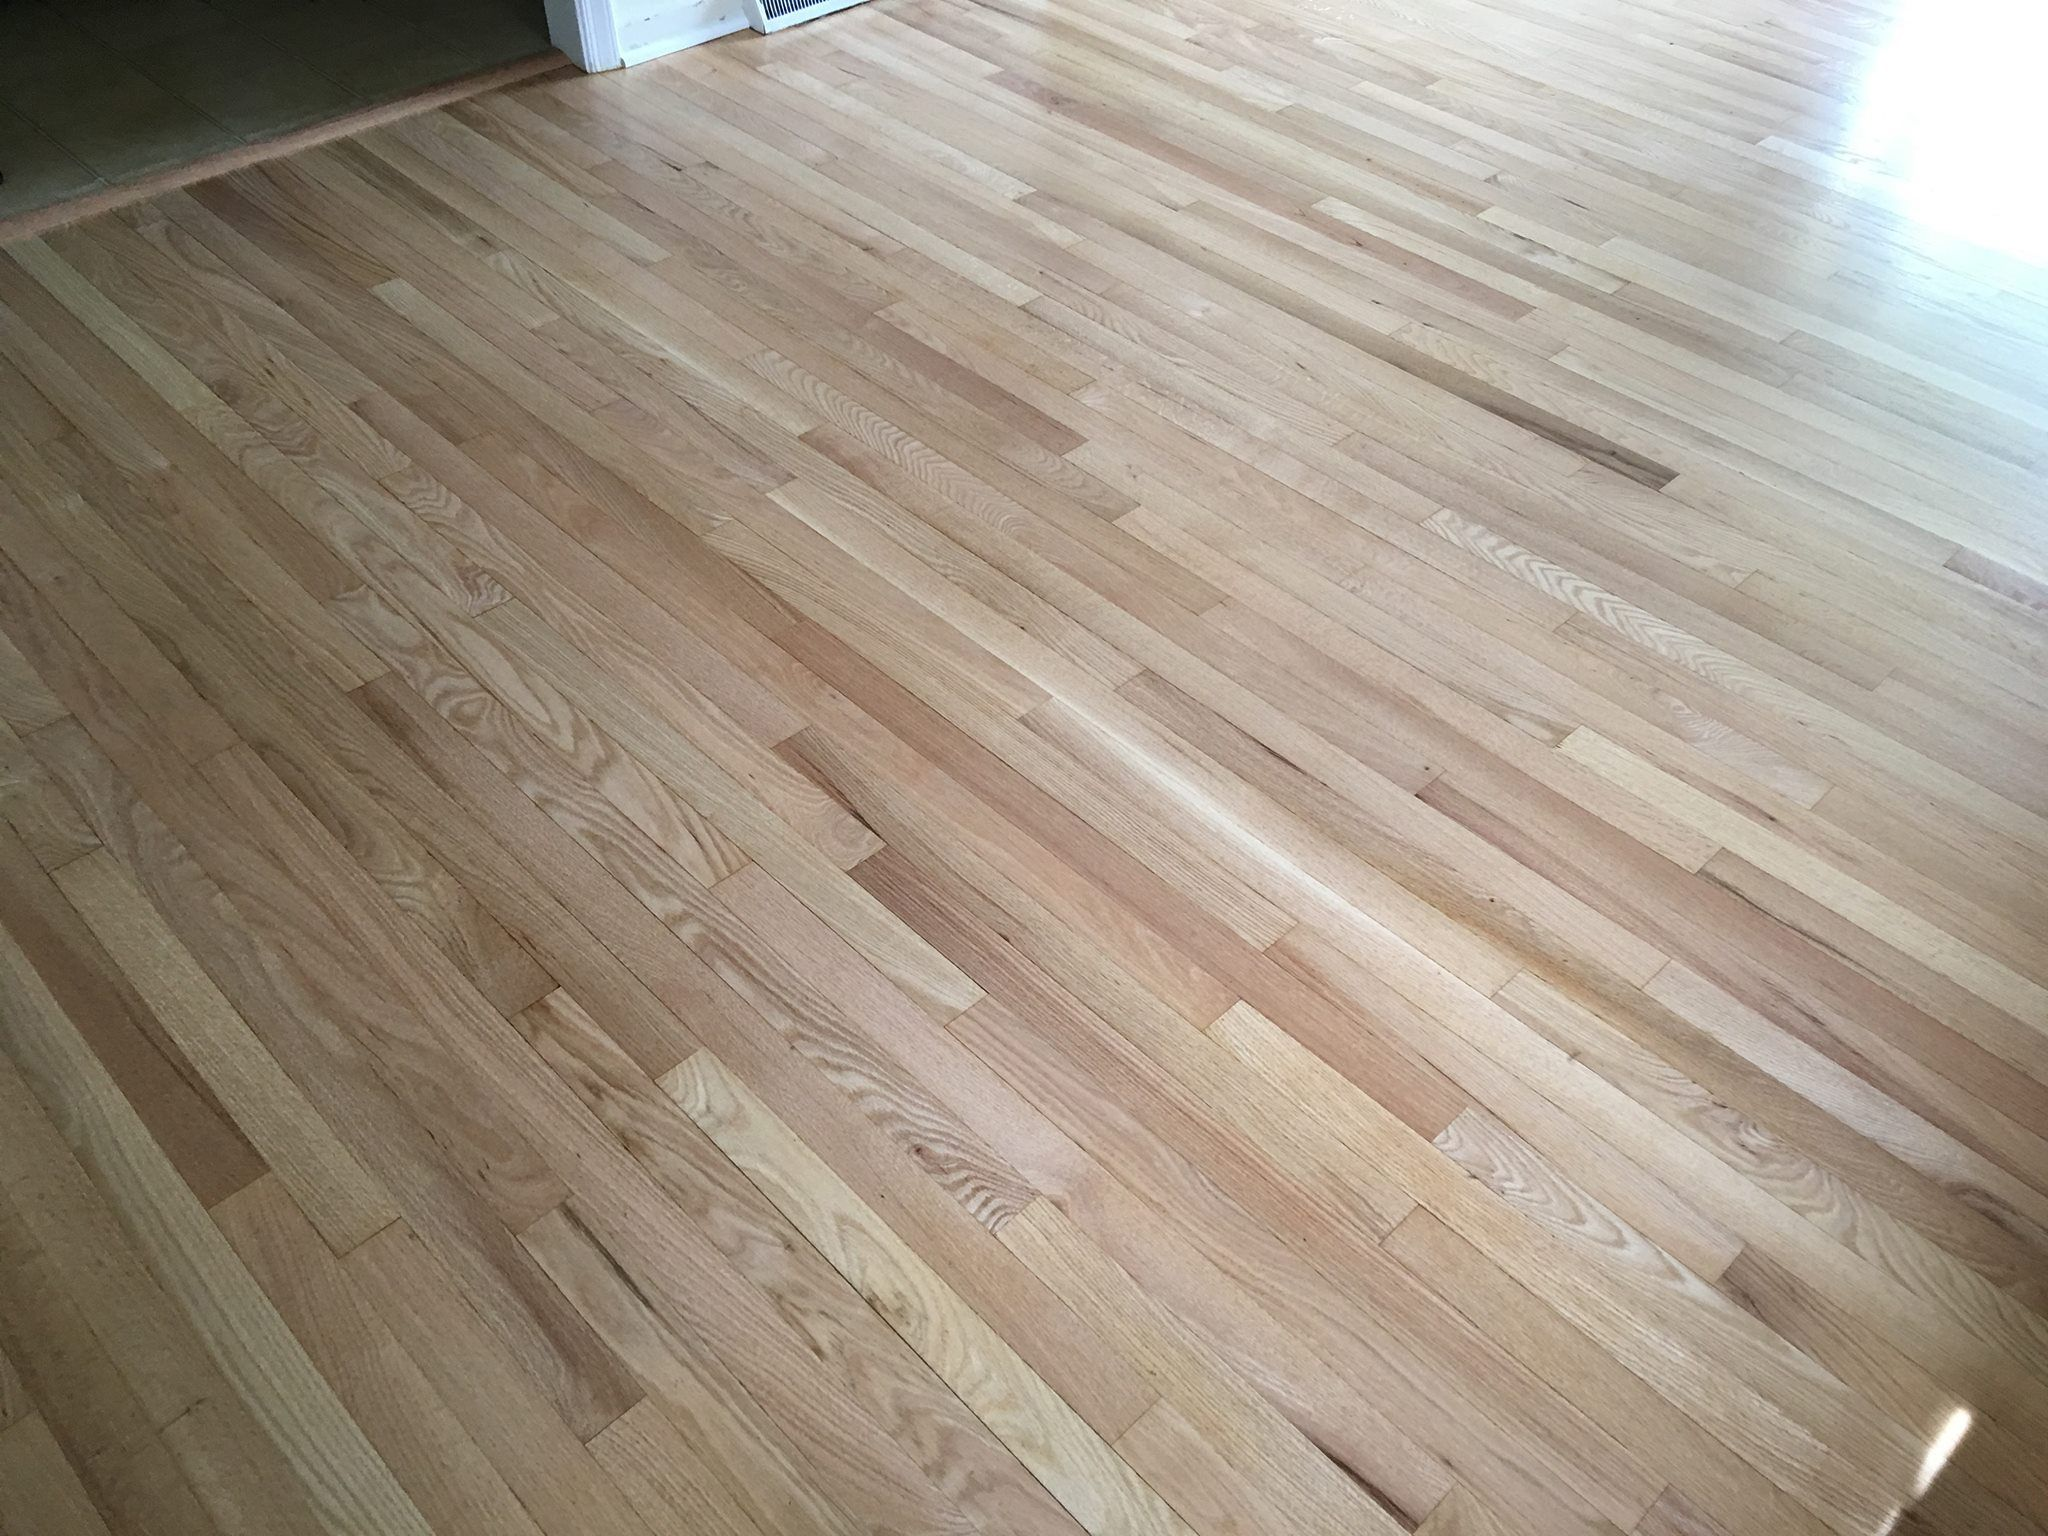 Red Oak Floors Refinished With Pro Image Satin Red Oak Floors Wood Floor Stain Colors Red Oak Hardwood Floors